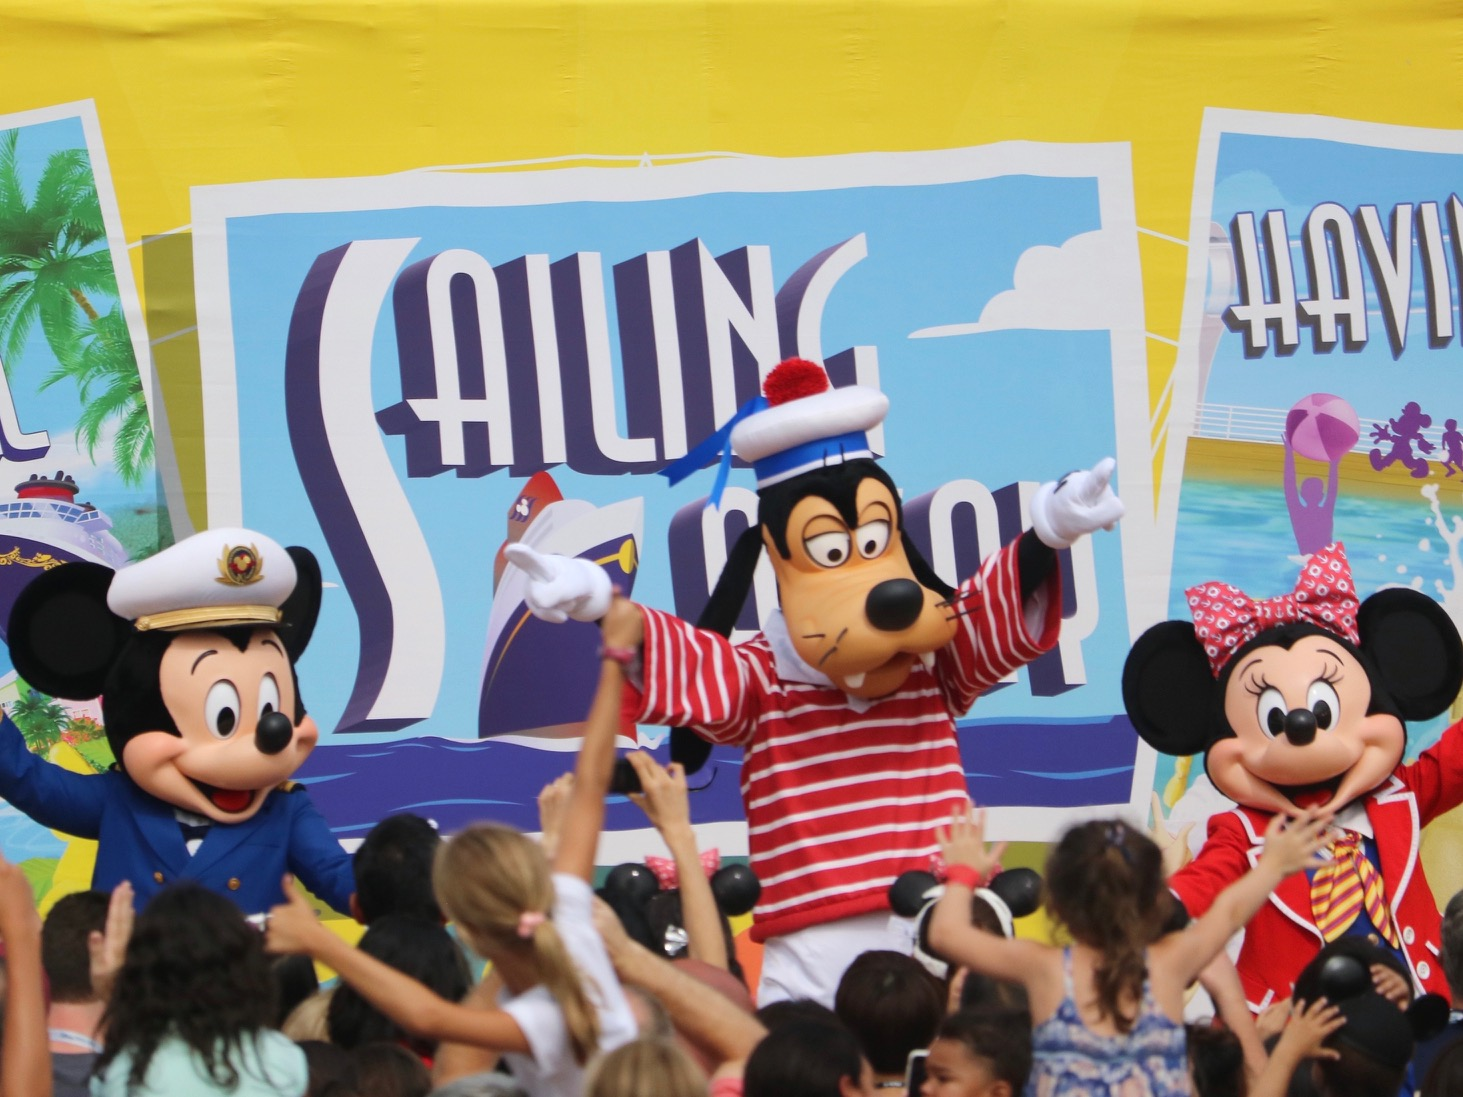 Disney Cruise Line: Sailing Away Deck Party on the Disney Dream